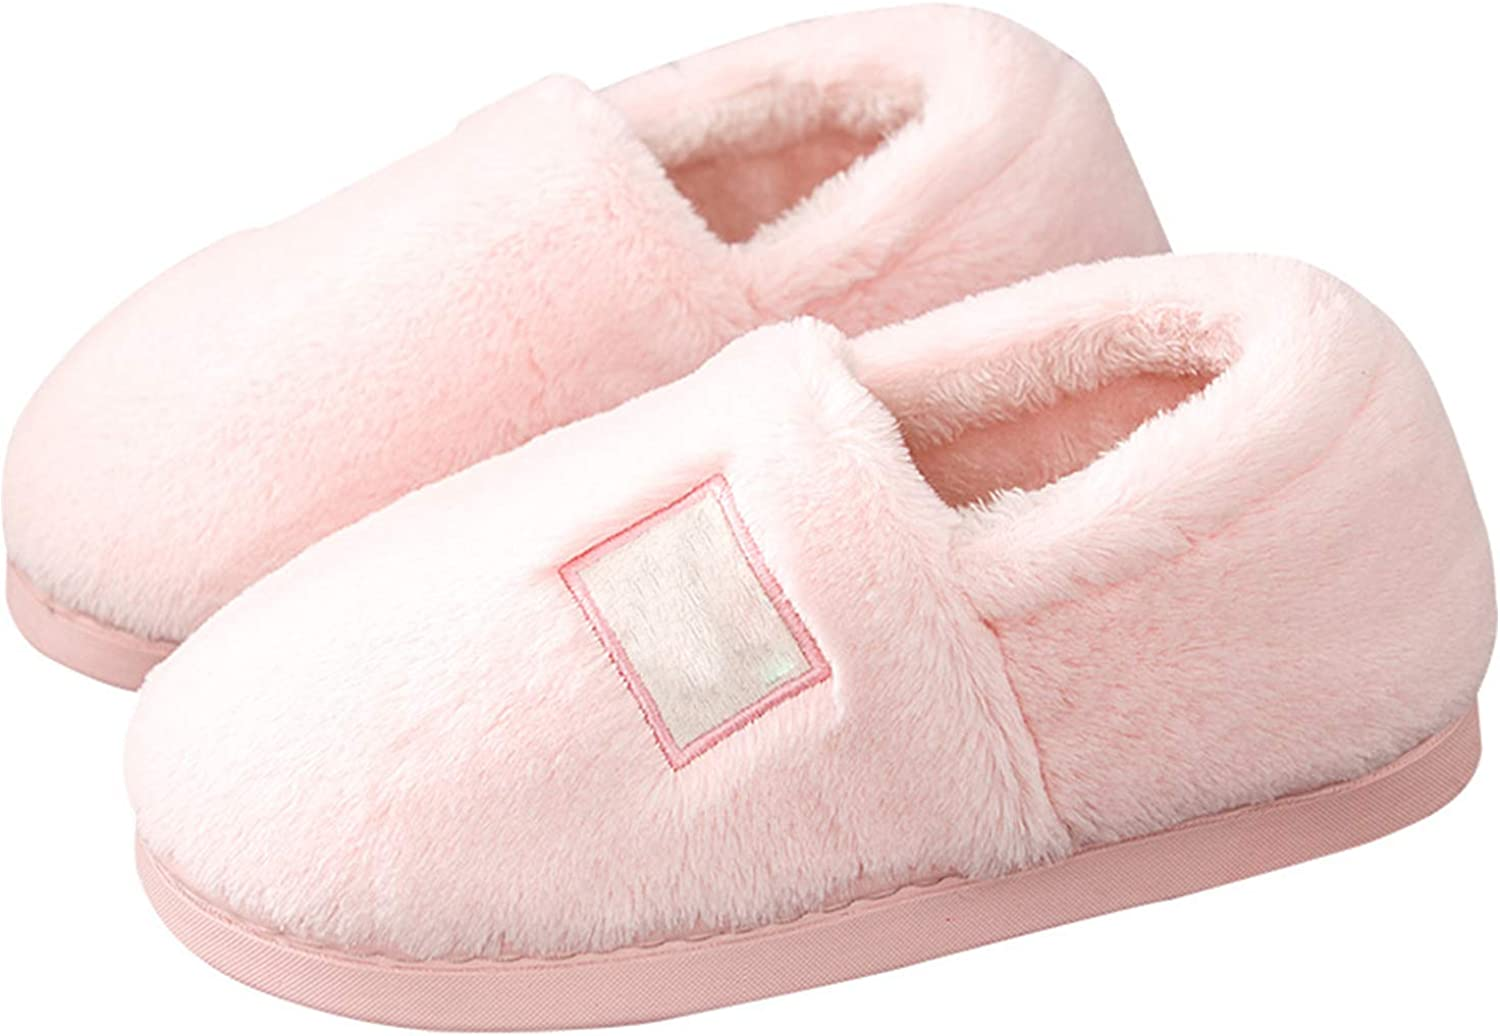 Cute Women's Closed Toe Slippers Autumn Winter Warm Comfortable shoes Indoor House Bedroom Slippers,Pink